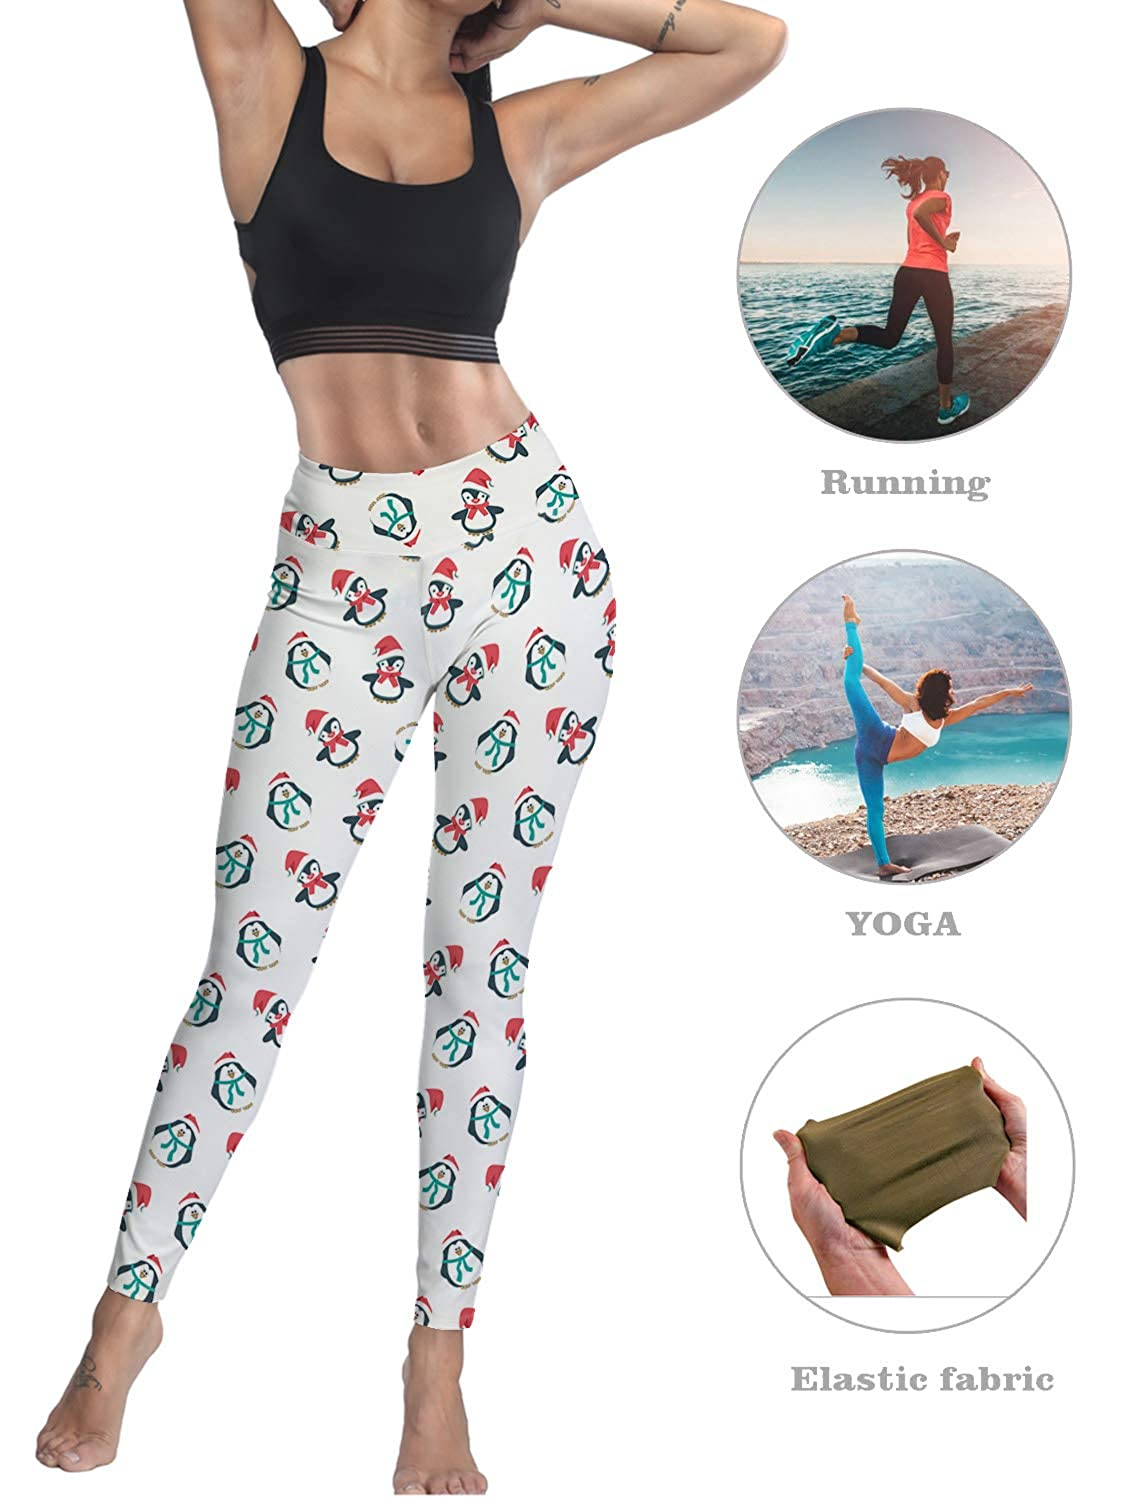 Amazon.com: Leggings para mujer con estampado navideño de ...